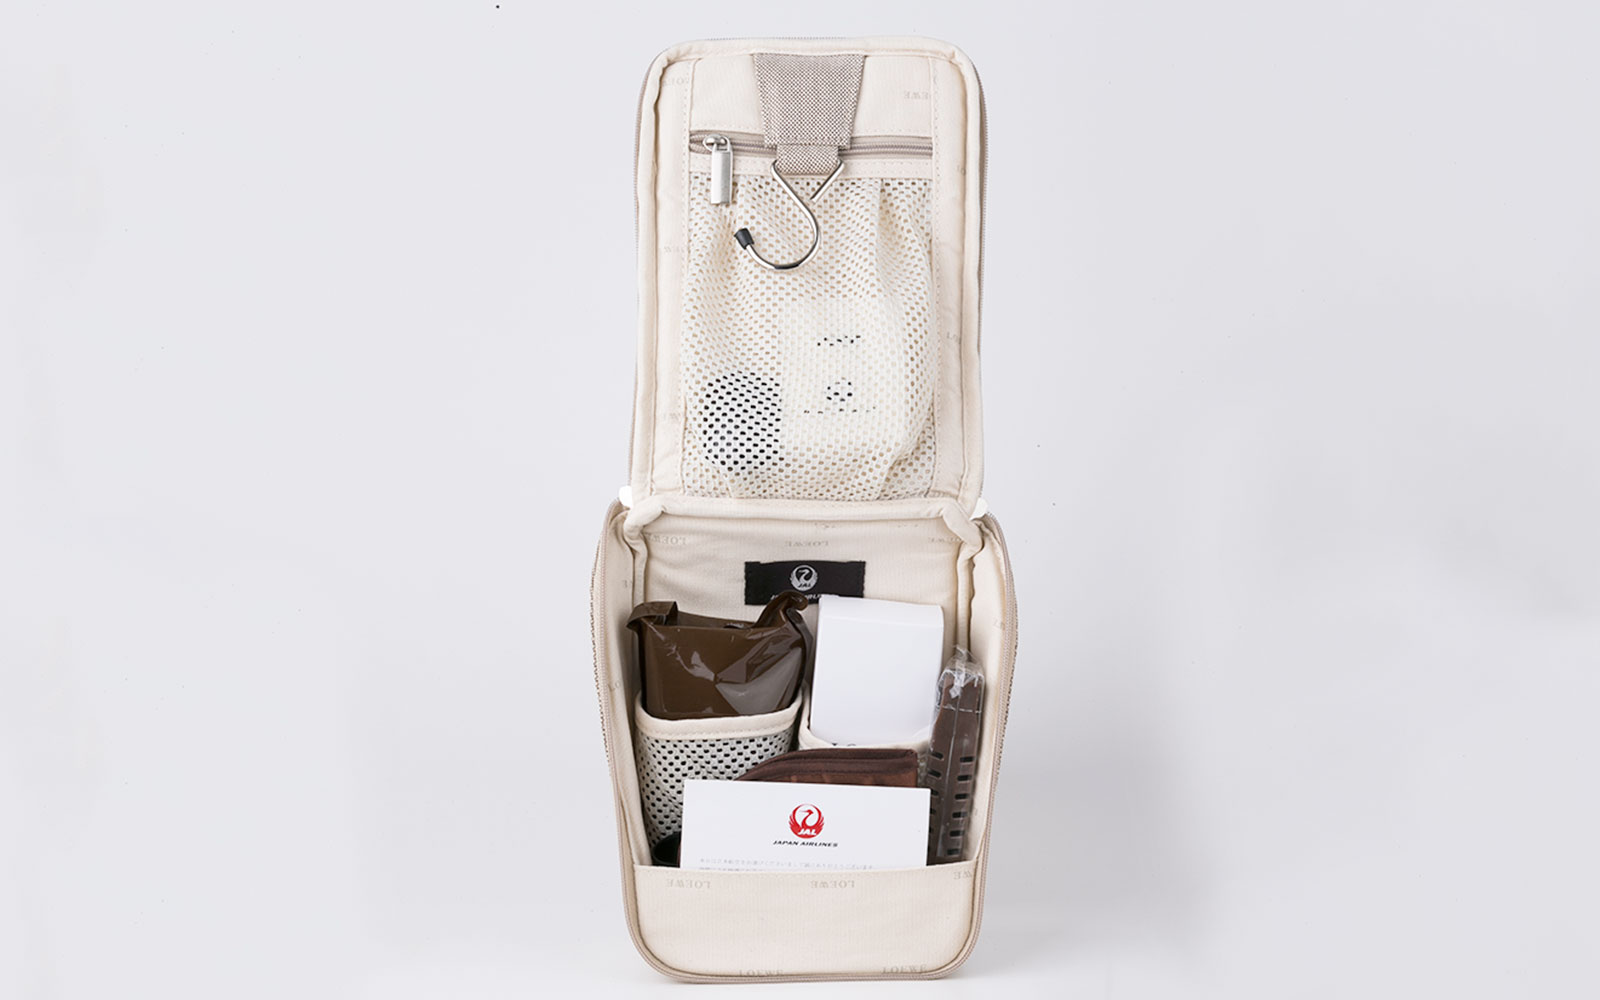 Japan Airlines: First Class Kit